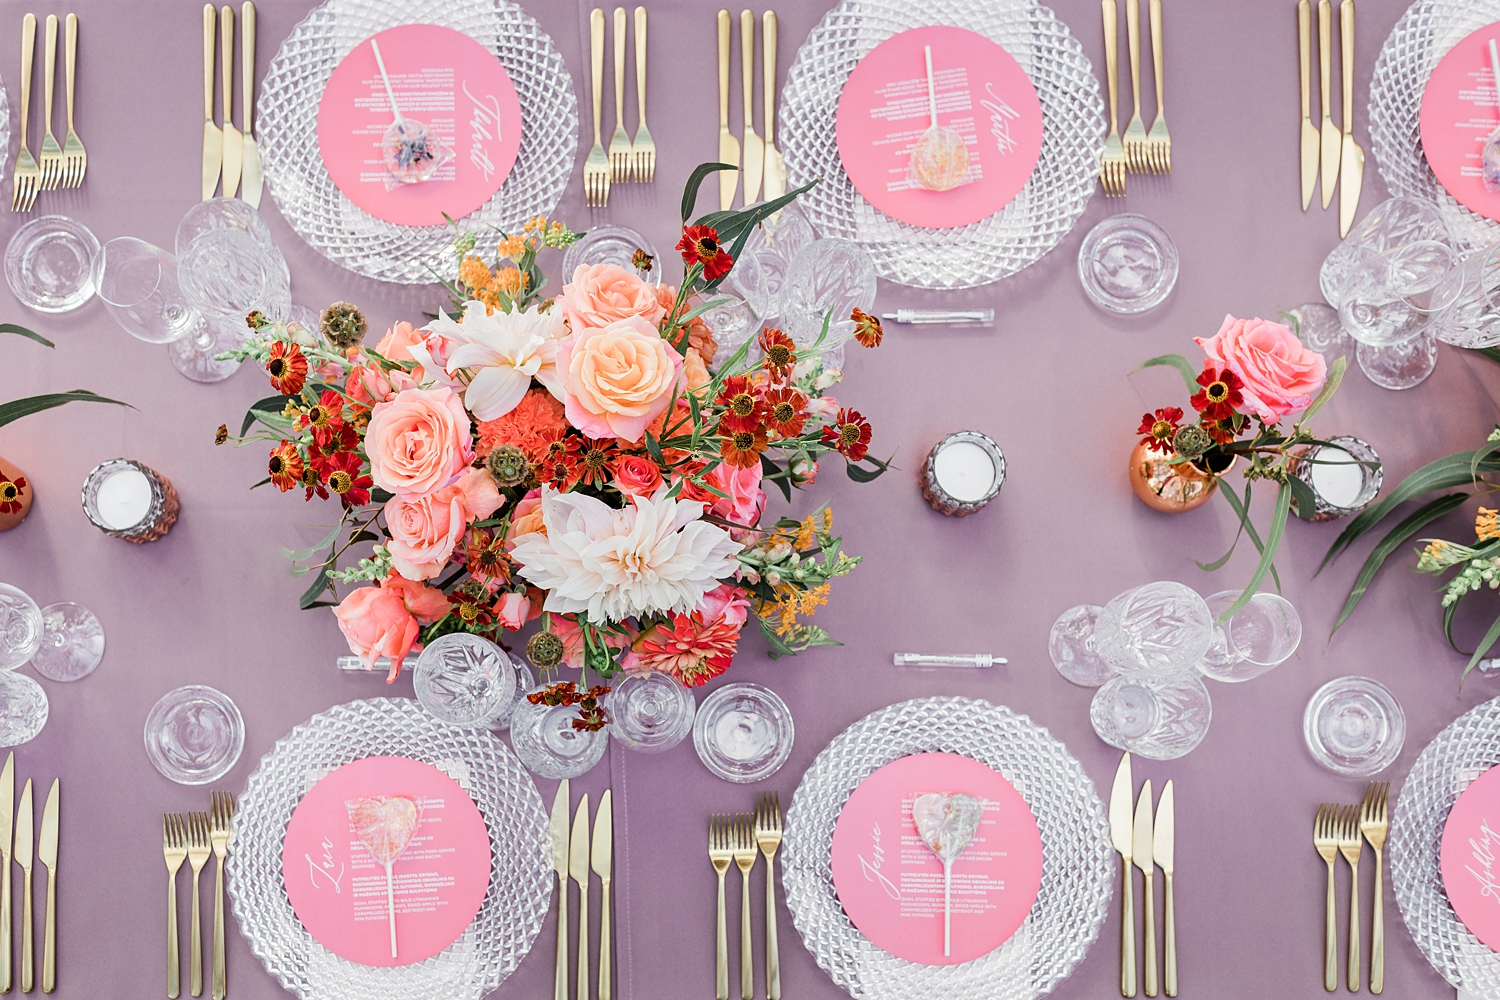 lilac-and-pink-table-setting-with-peace-rose-and-dahlia-bouquets-jurgita-lukos-photography